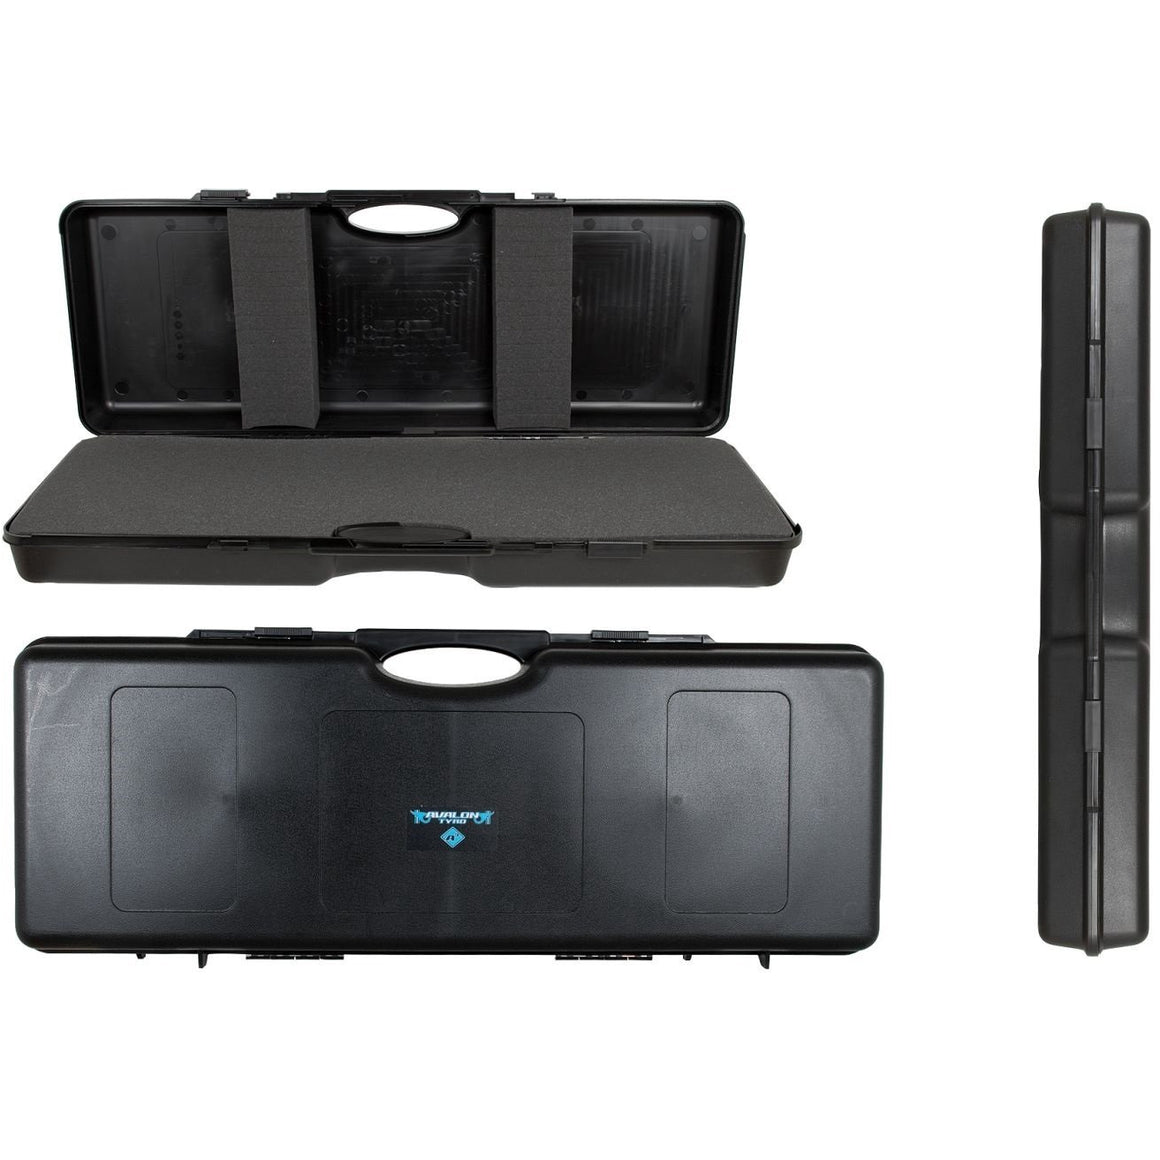 Avalon hard case Tyro ABS